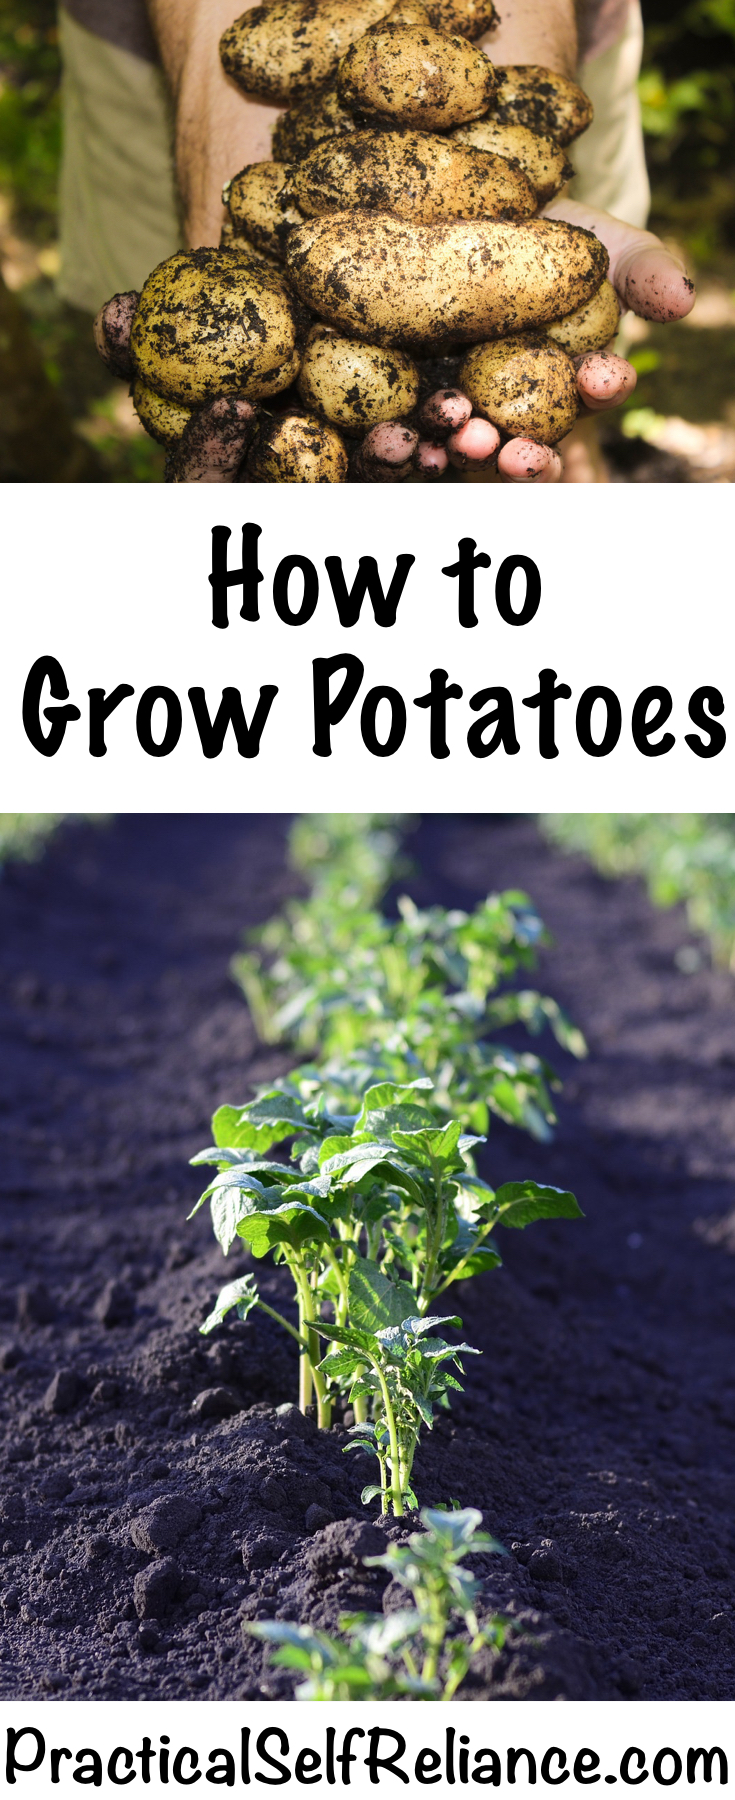 How to Grow Potatoes #potatoes #growingpotatoes #gardening #organicgardening #containergardening #howtogrow #vegetablegardening #gardeningtips #homesteading #homestead #selfreliant